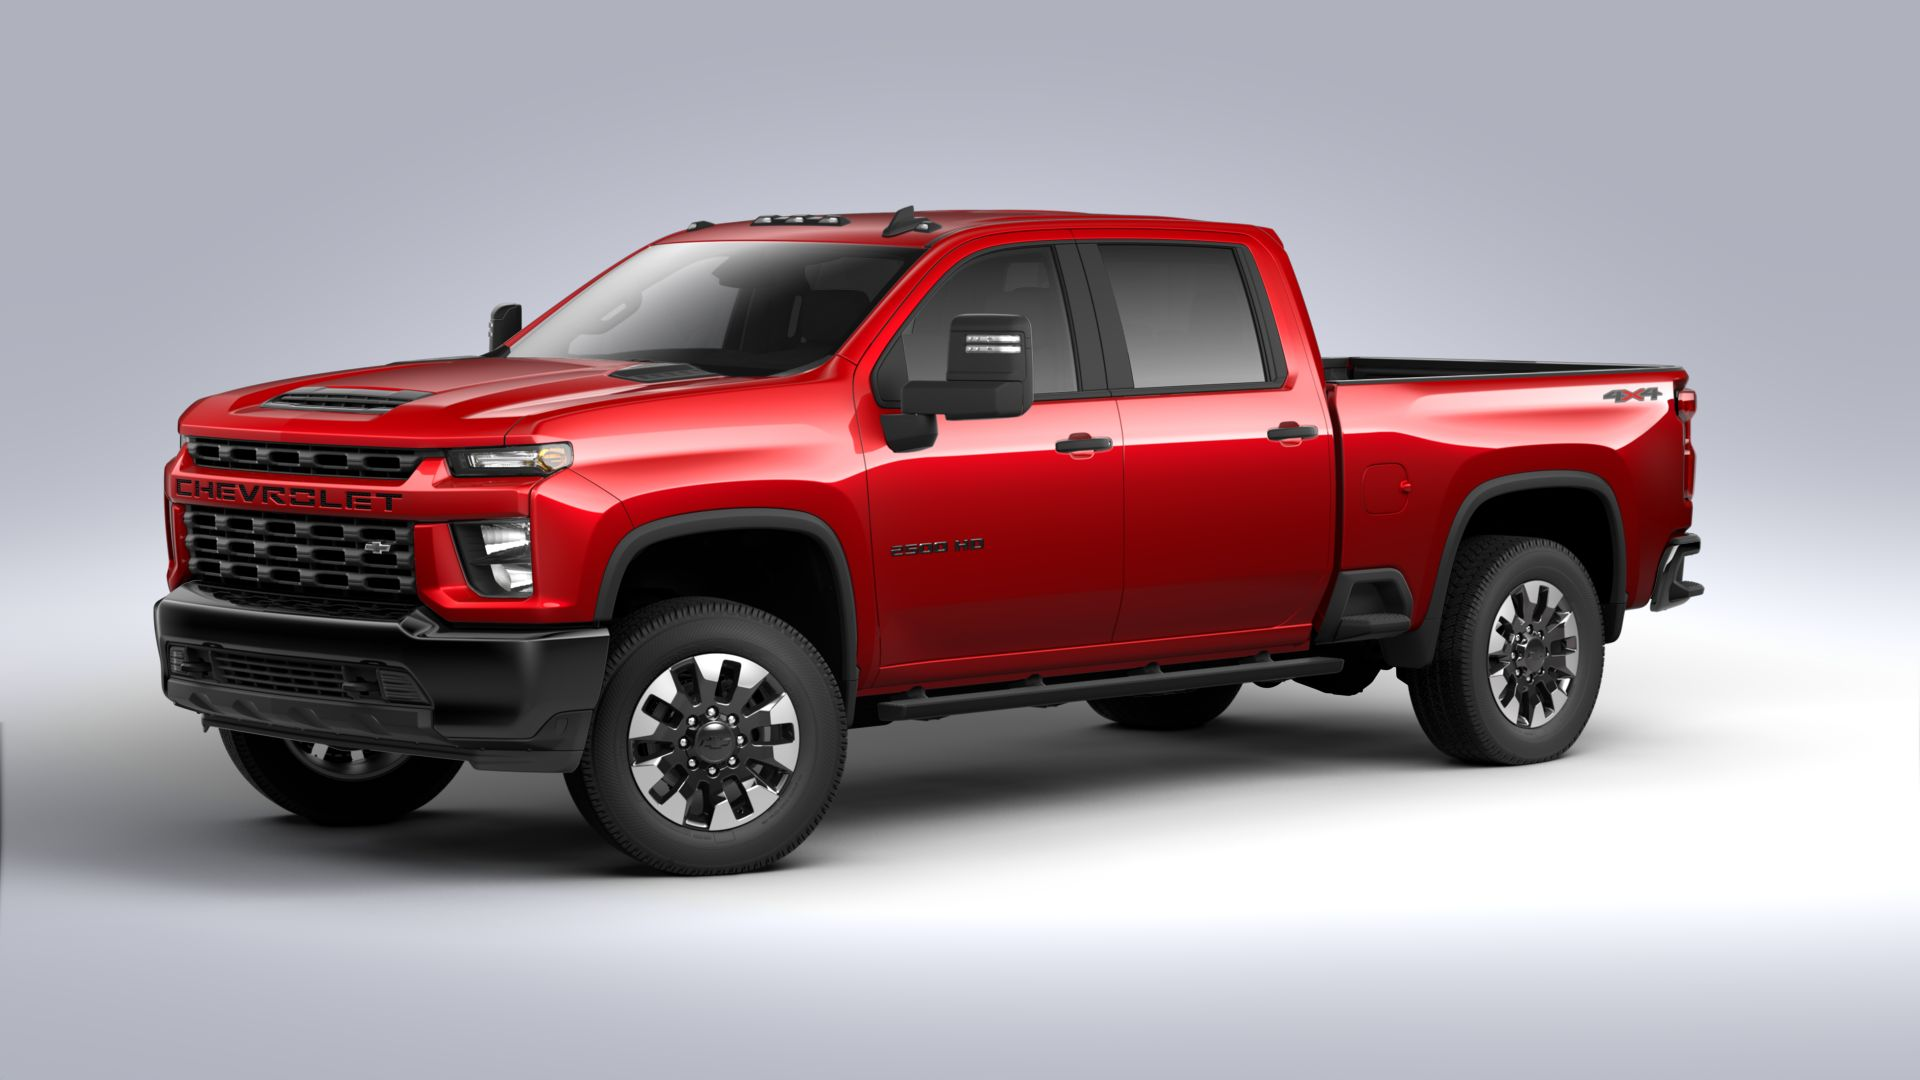 2020 Chevrolet Silverado 2500 HD Custom